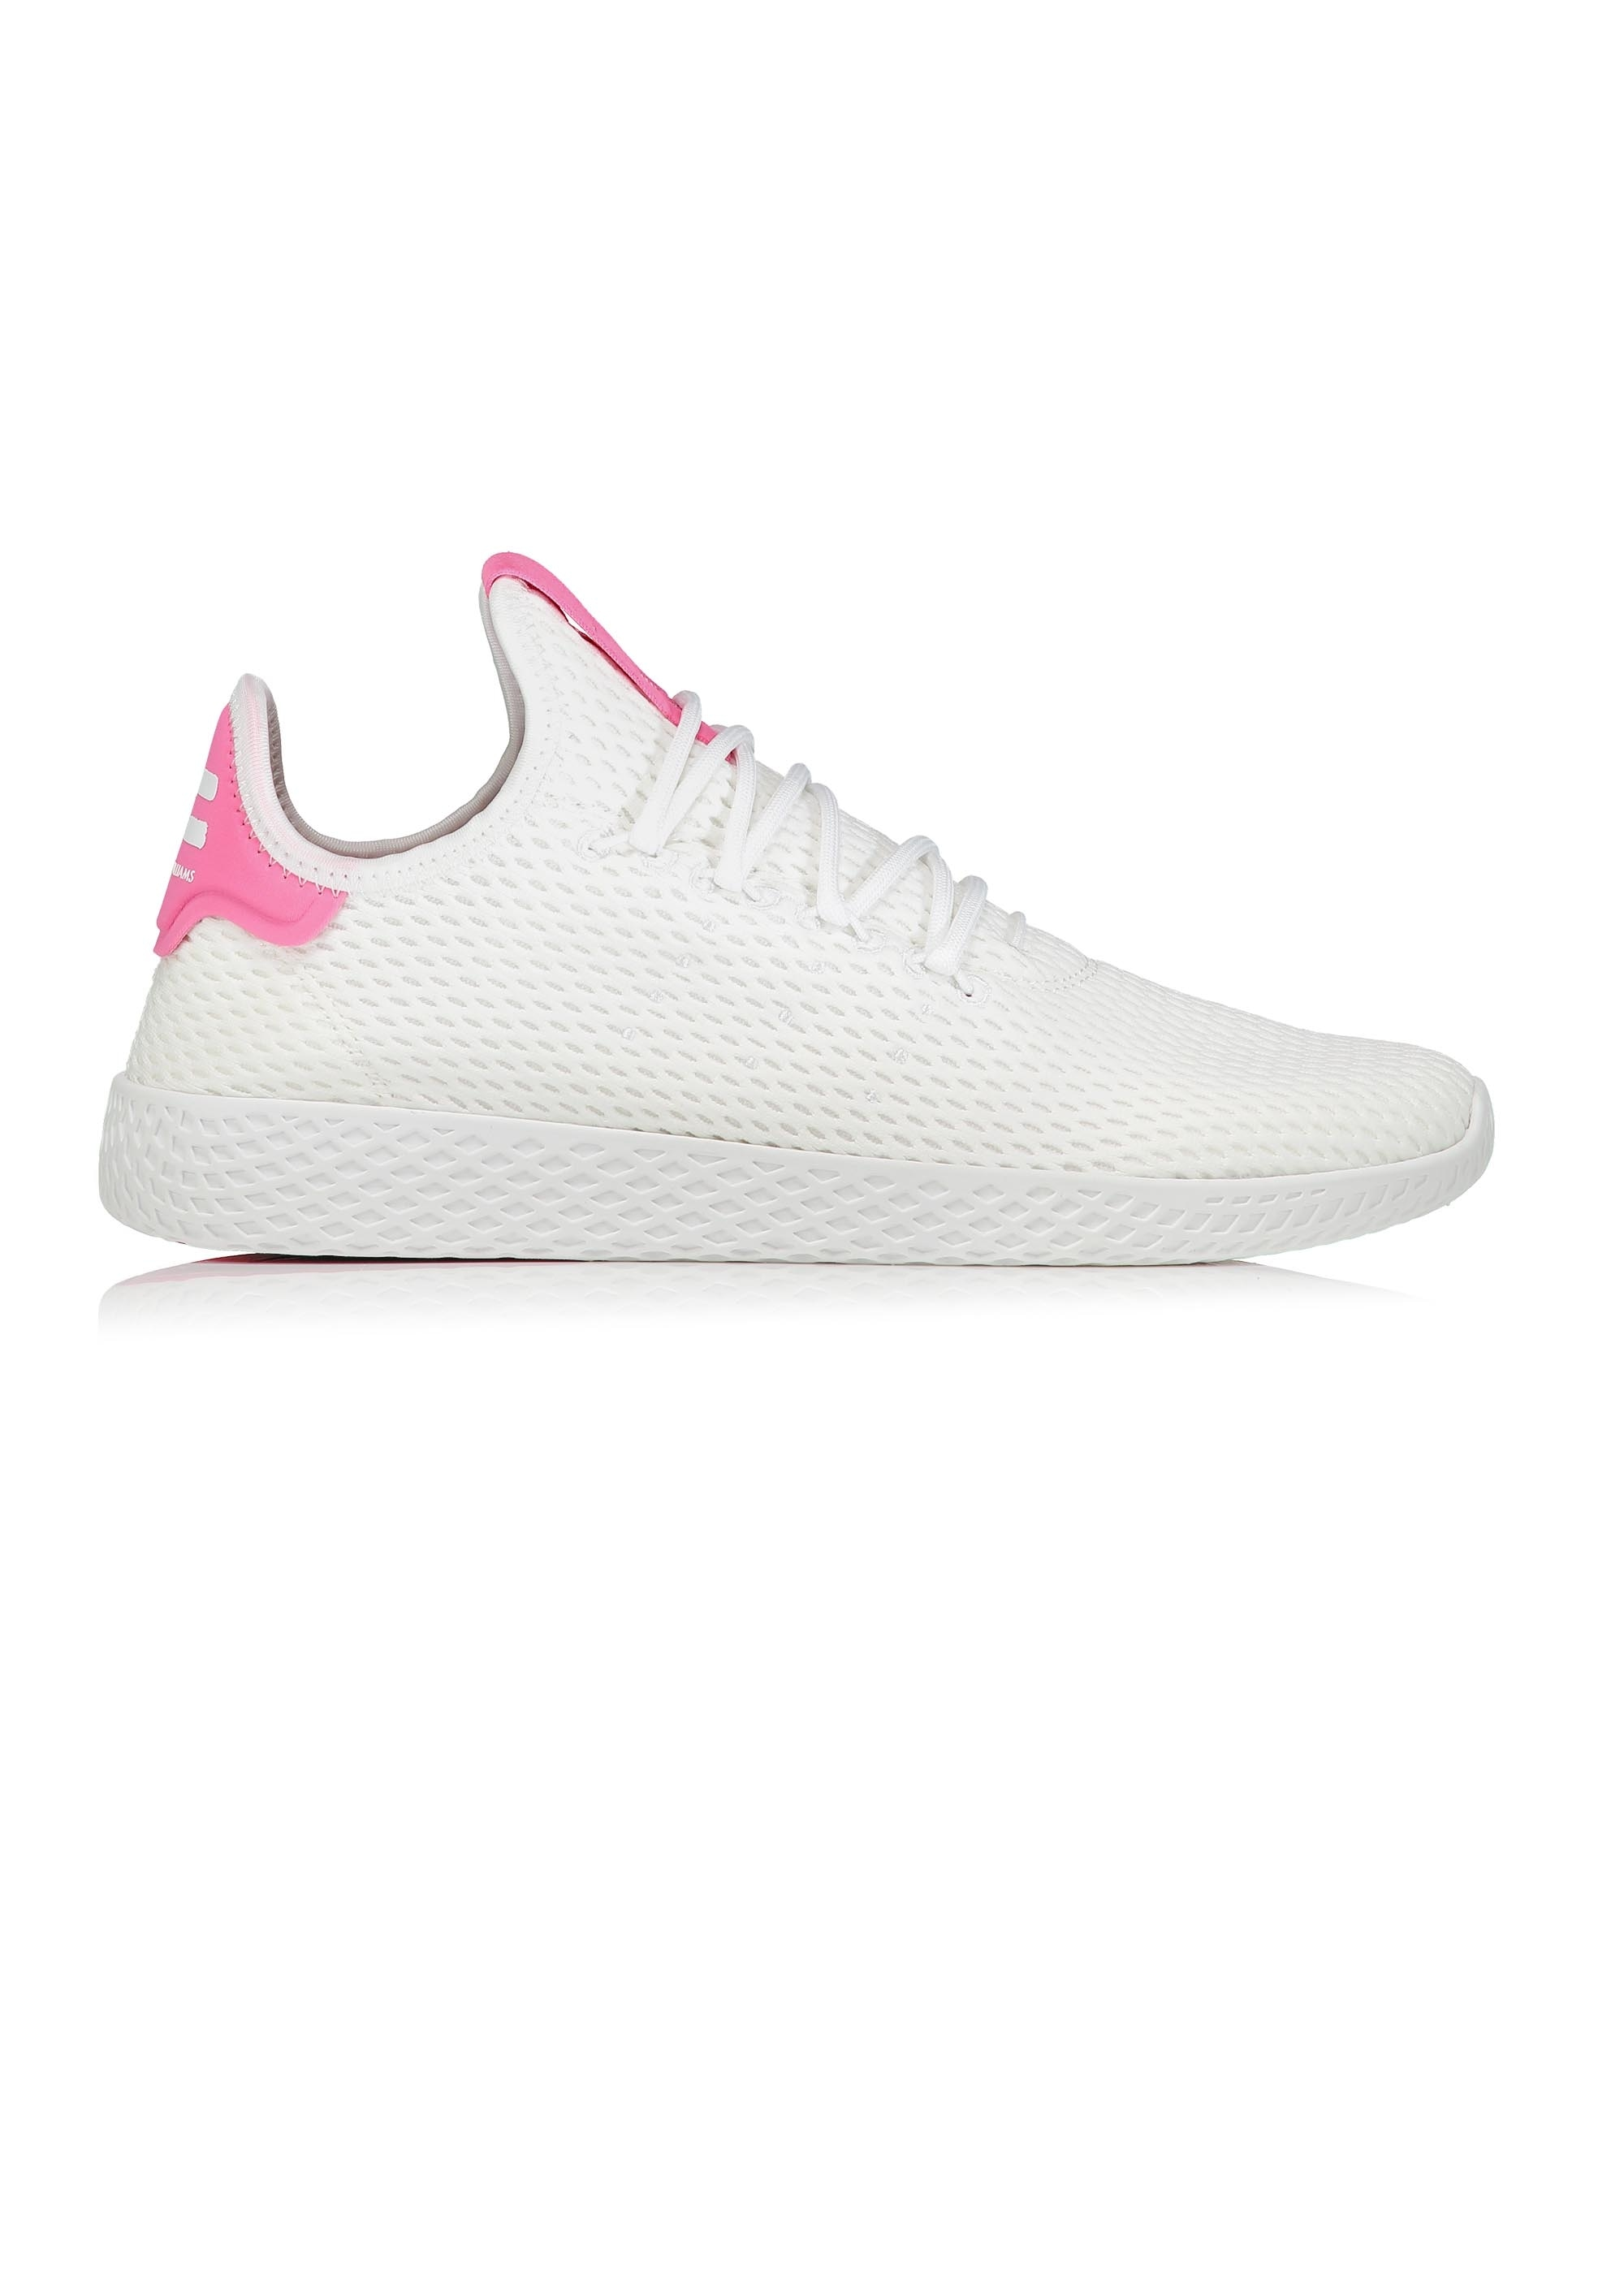 64330db5b9cc1 adidas Originals Footwear Pharrell Williams Tennis Hu White   Pink ...